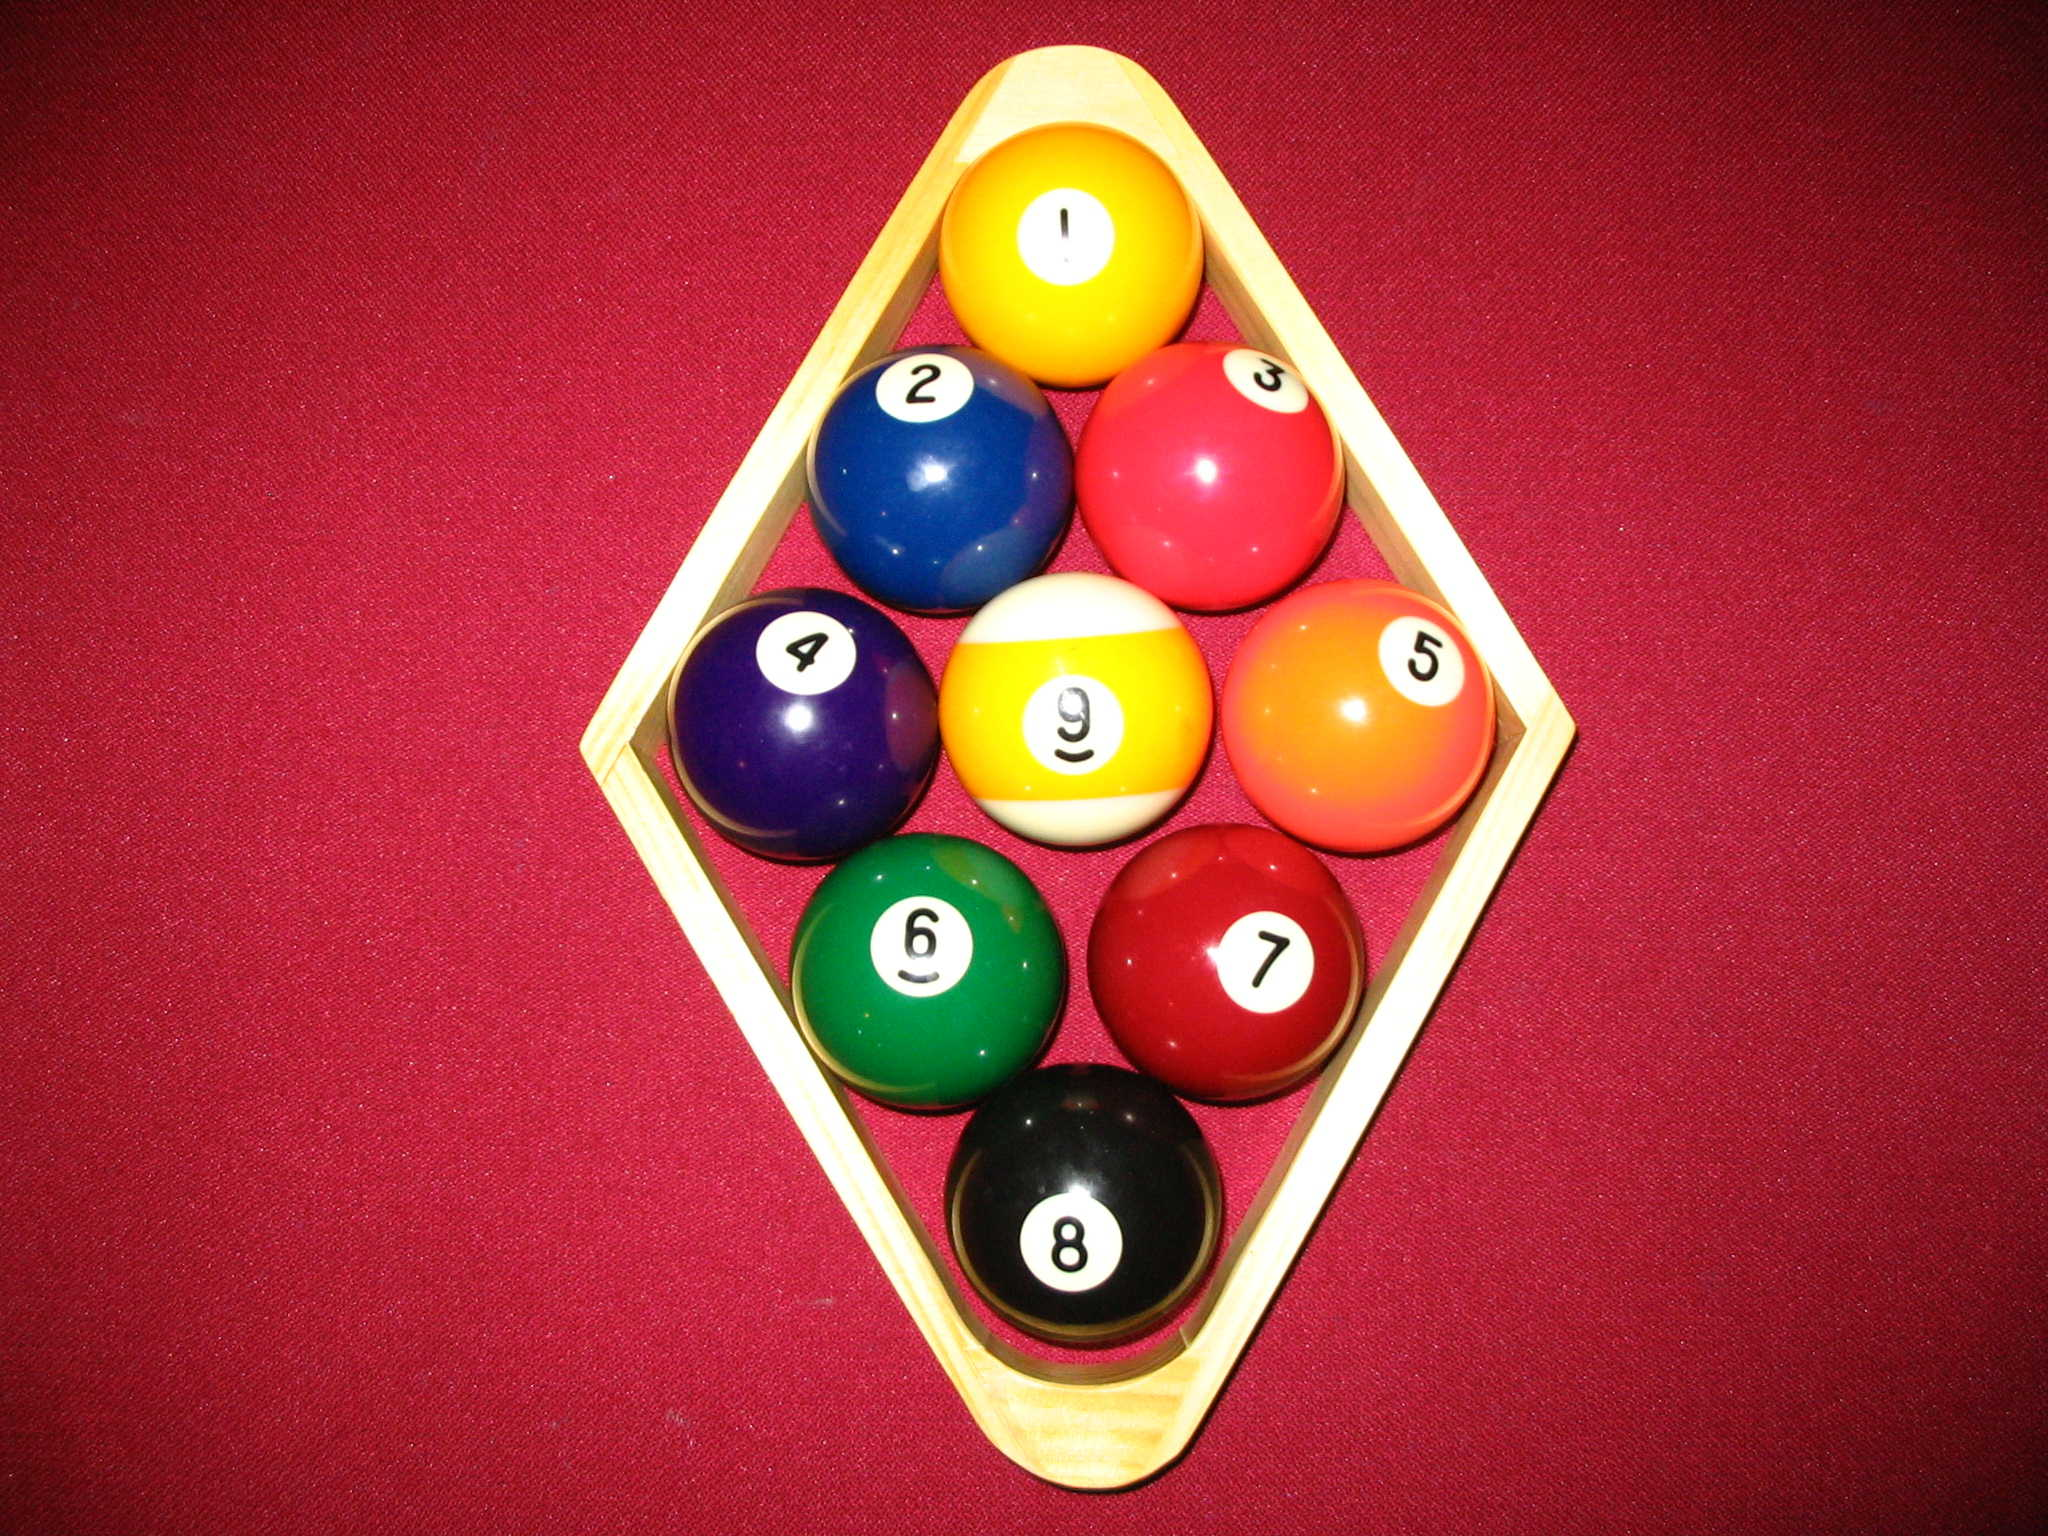 How To Play Ball Pool The Simplified Version - Games to play on a pool table